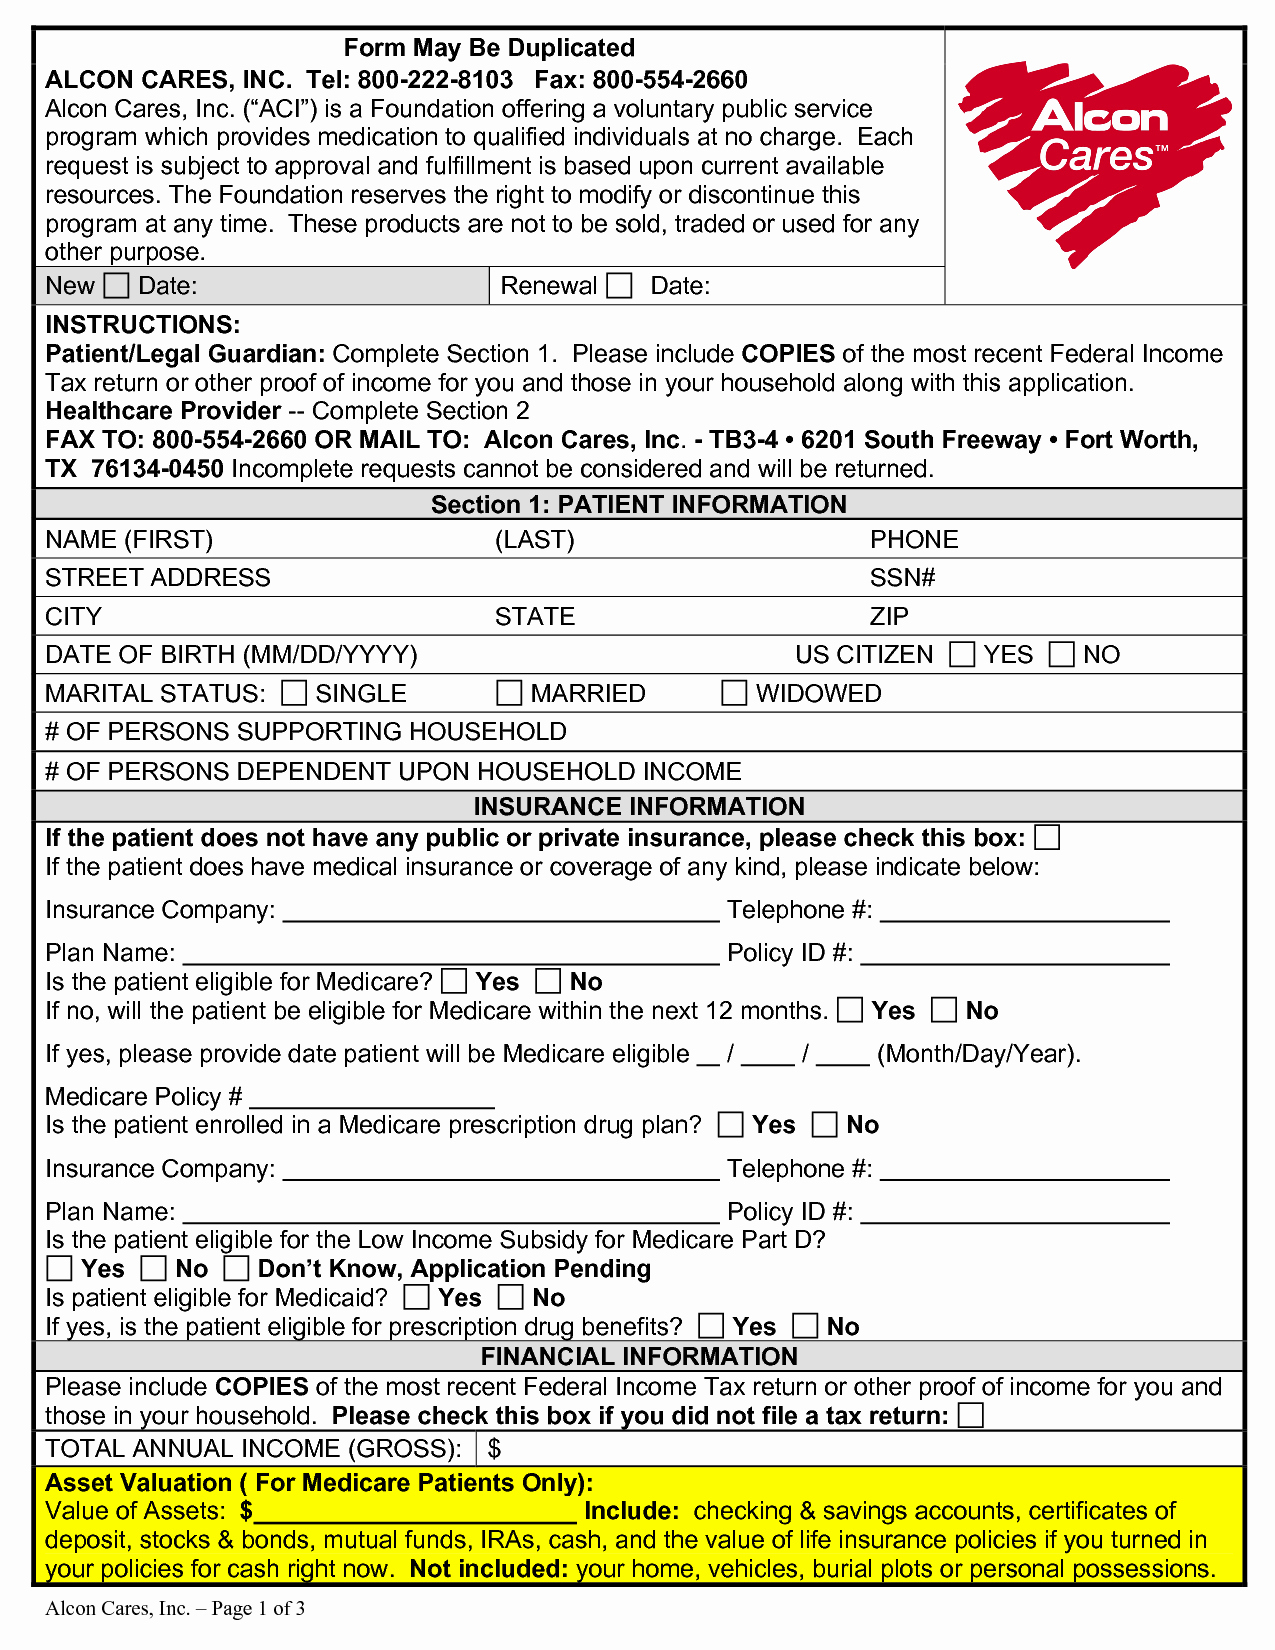 007 Florida Health Care Power Ofy Forms Lovely Form Free Printable - Free Printable Medical Power Of Attorney Forms